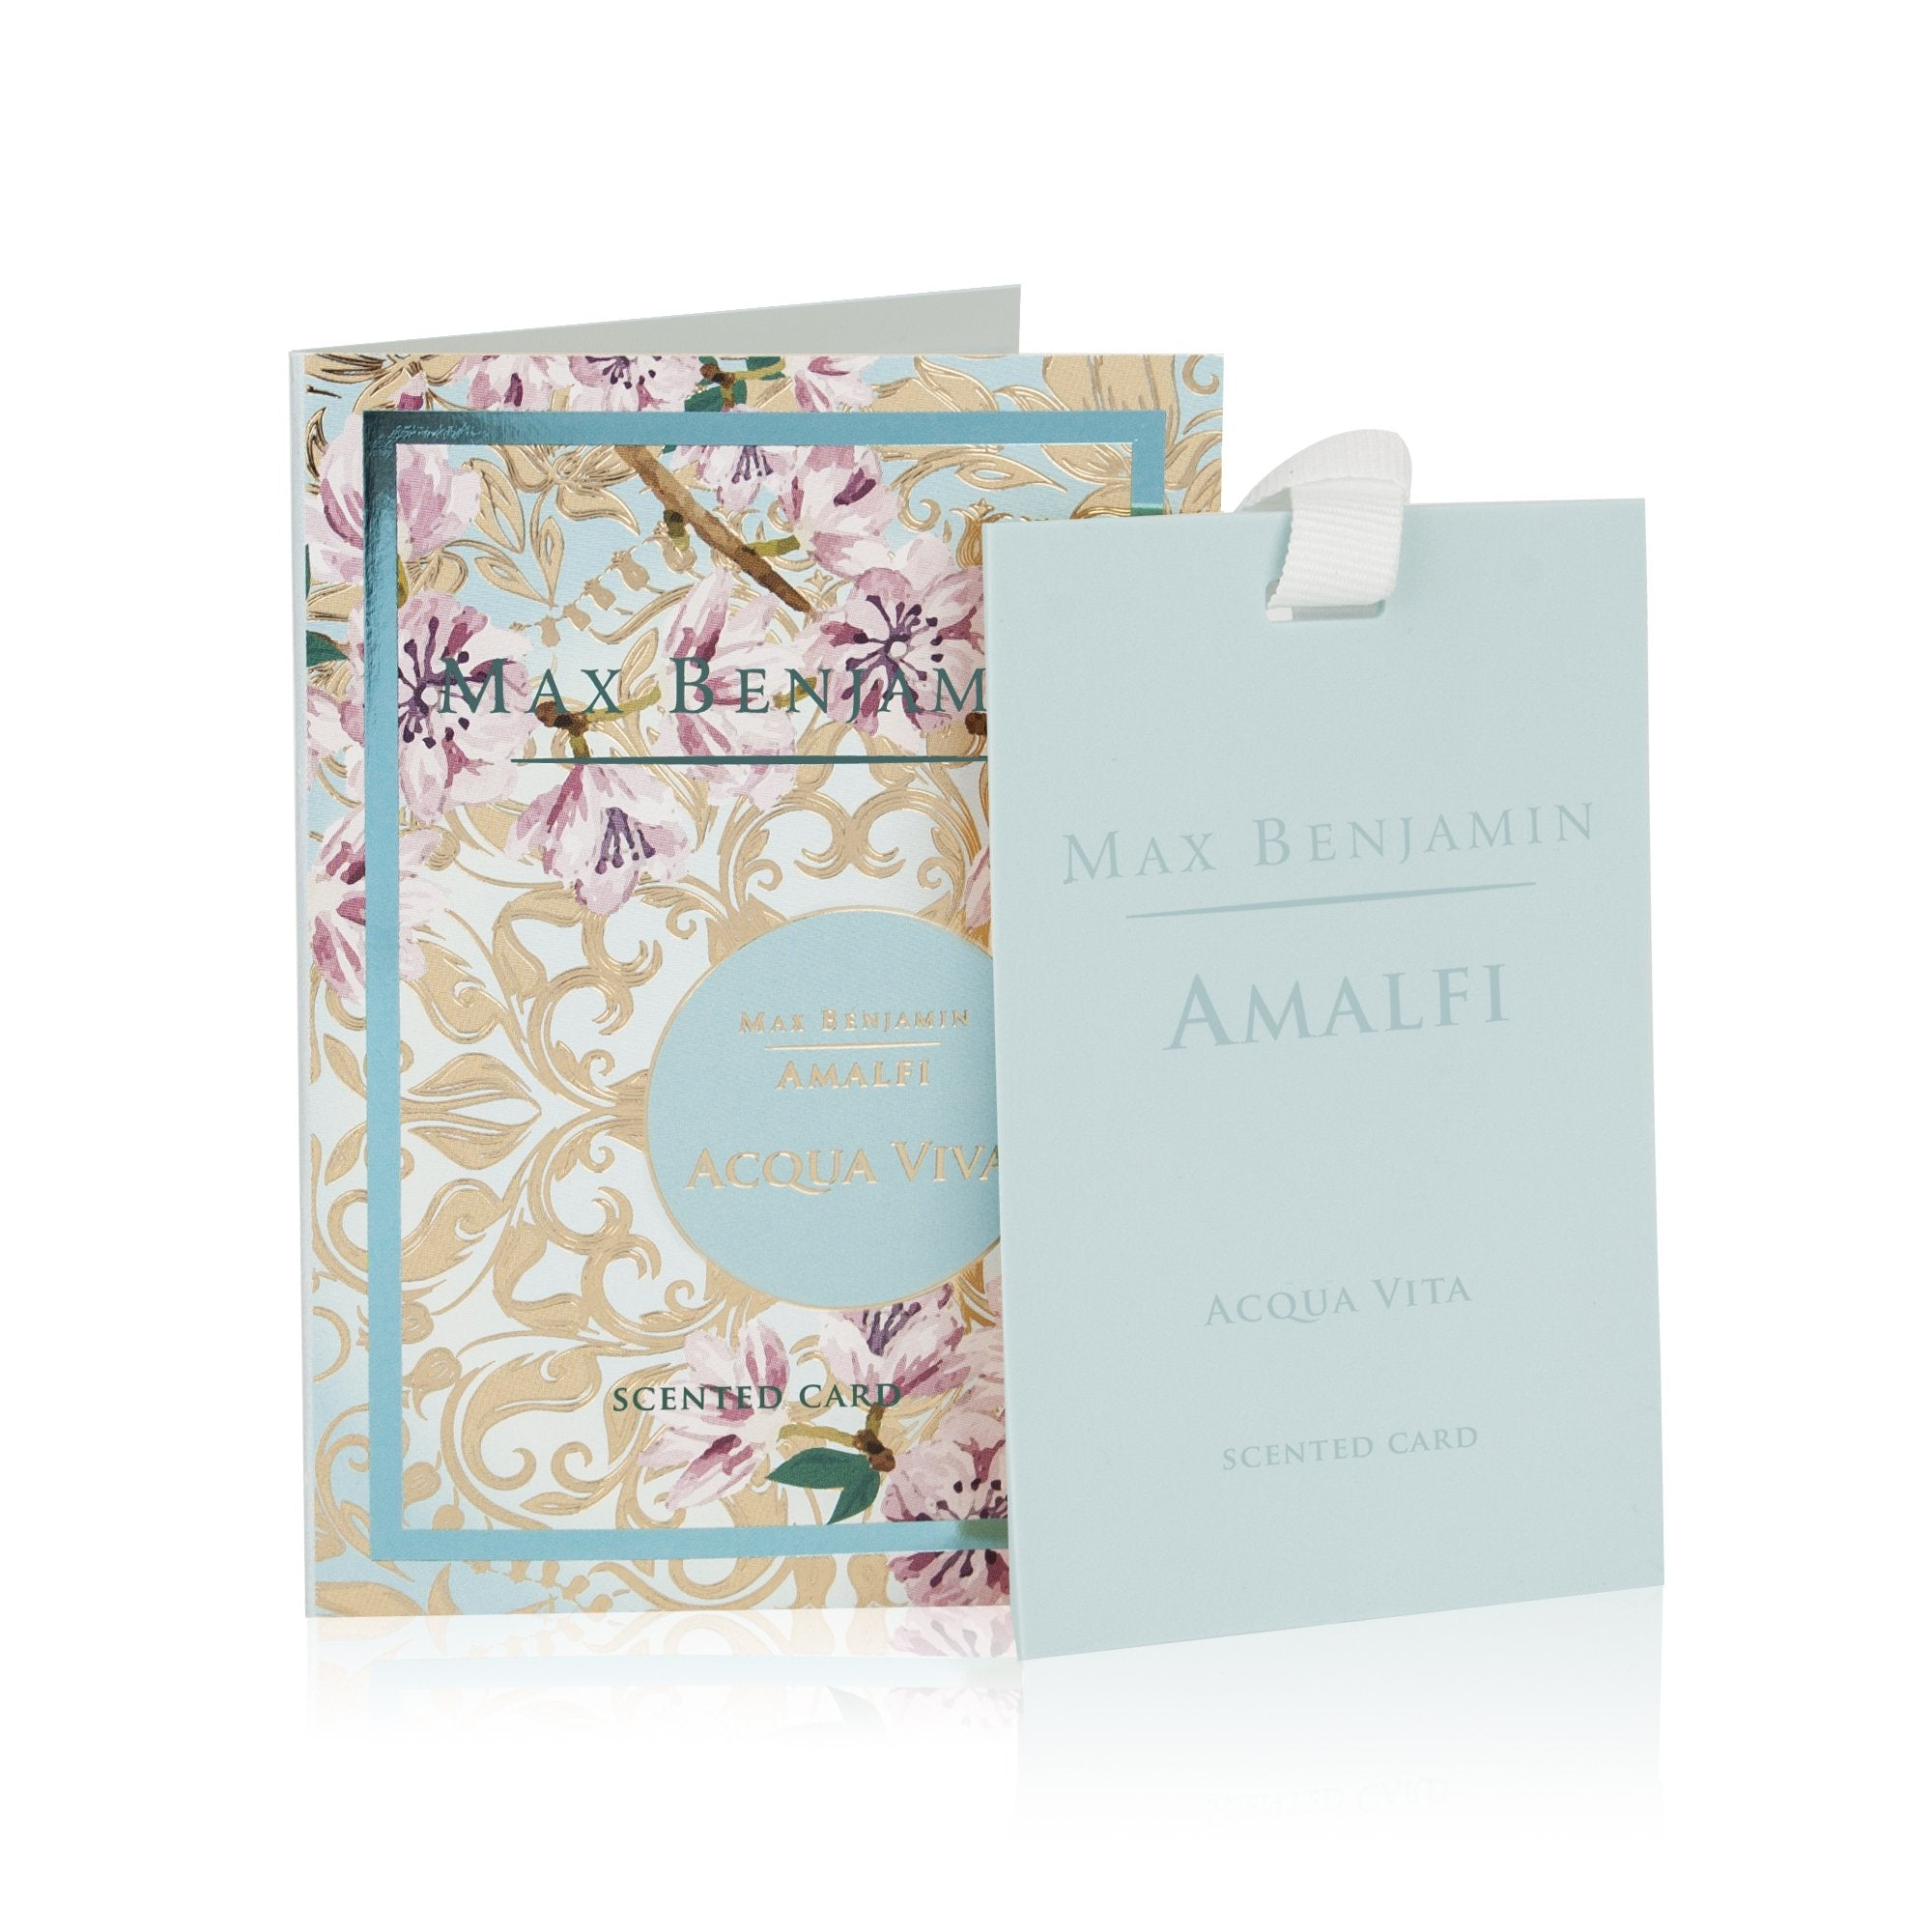 Amalfi Scented Card